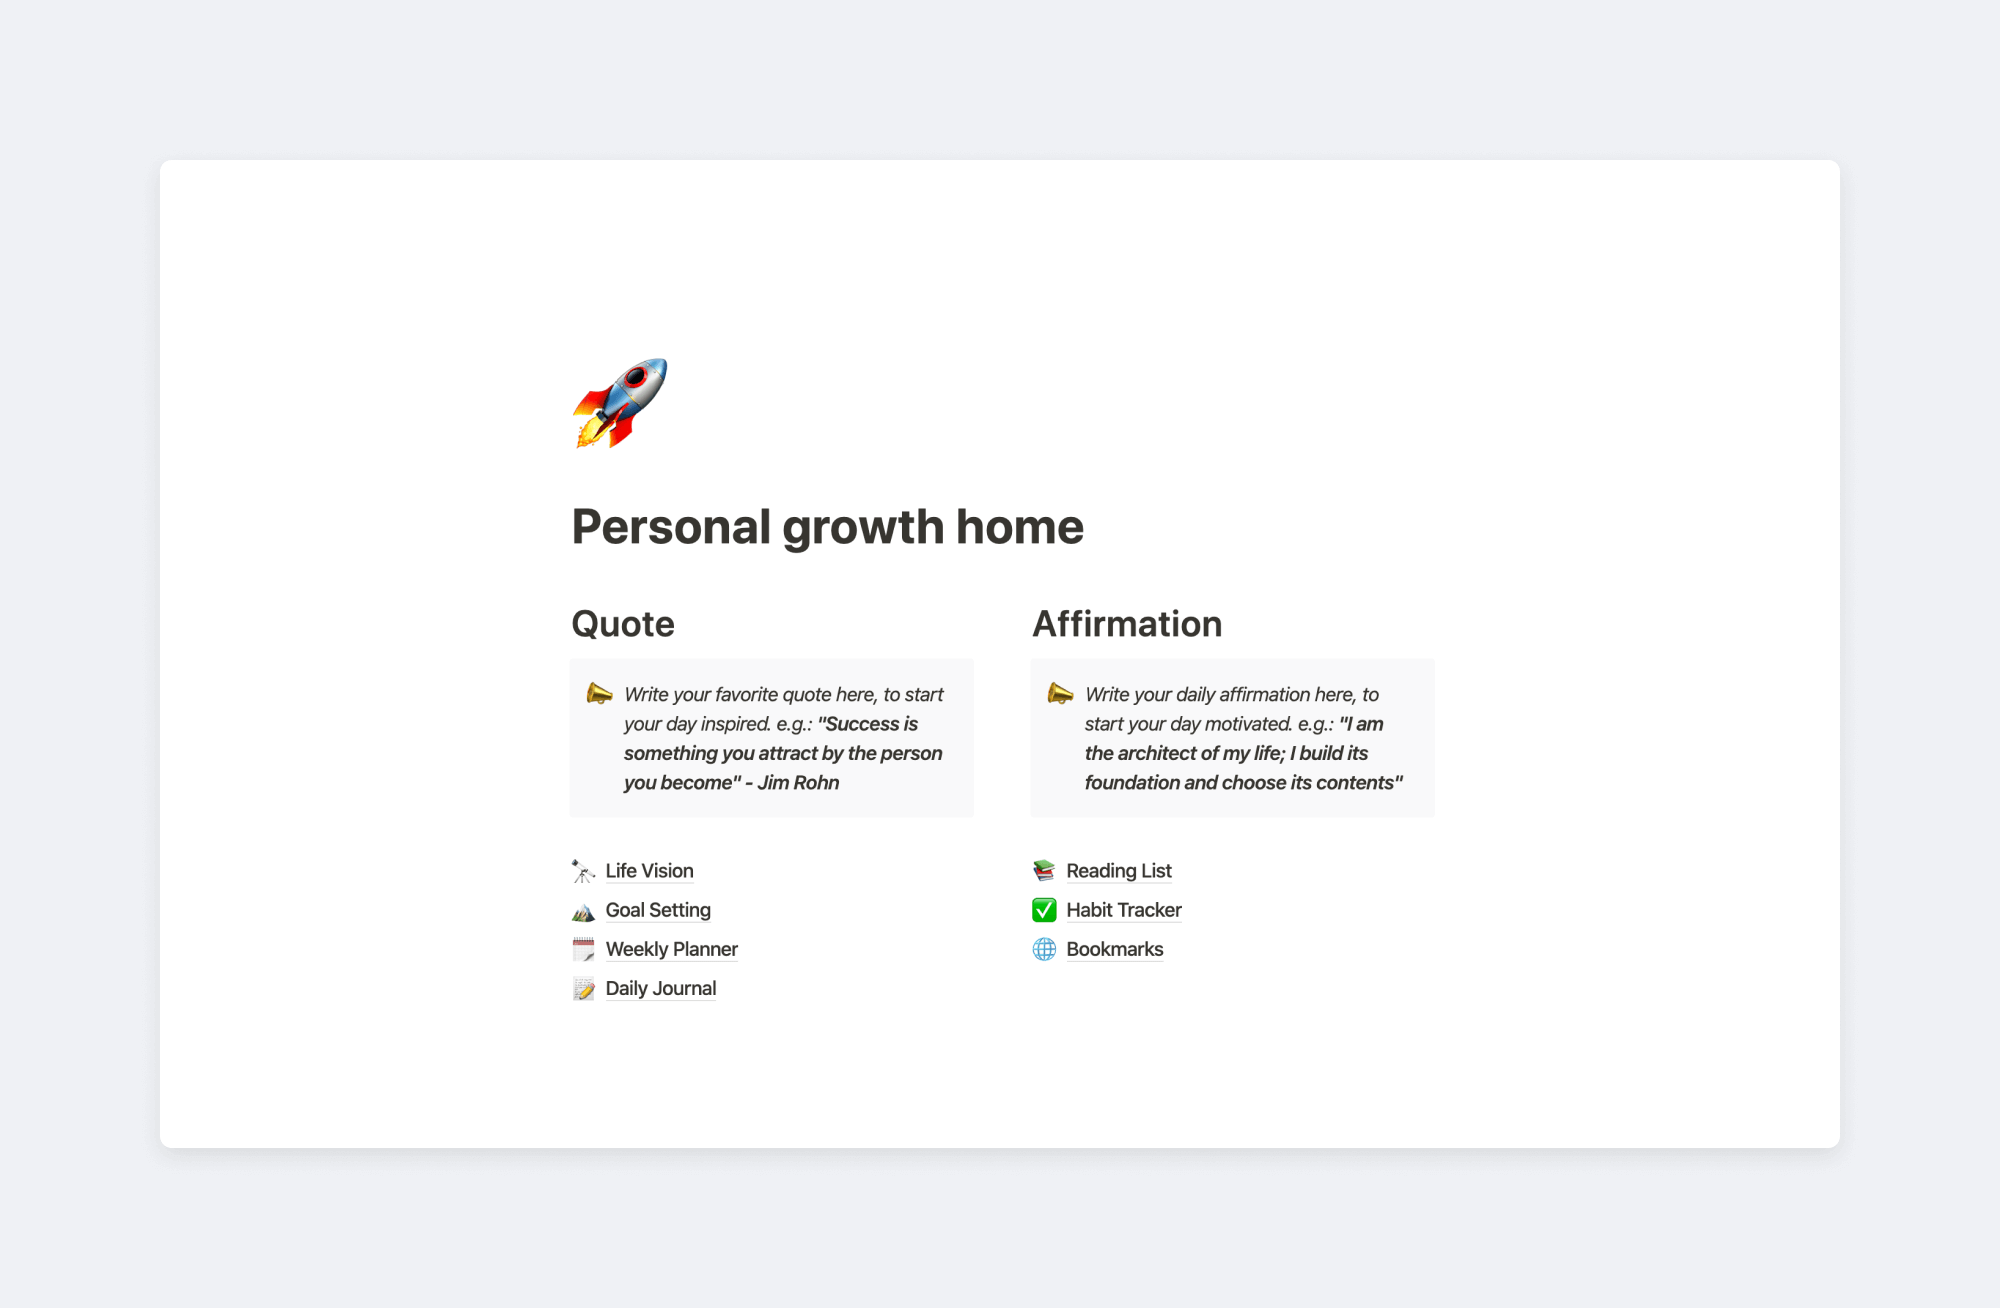 Personal growth home